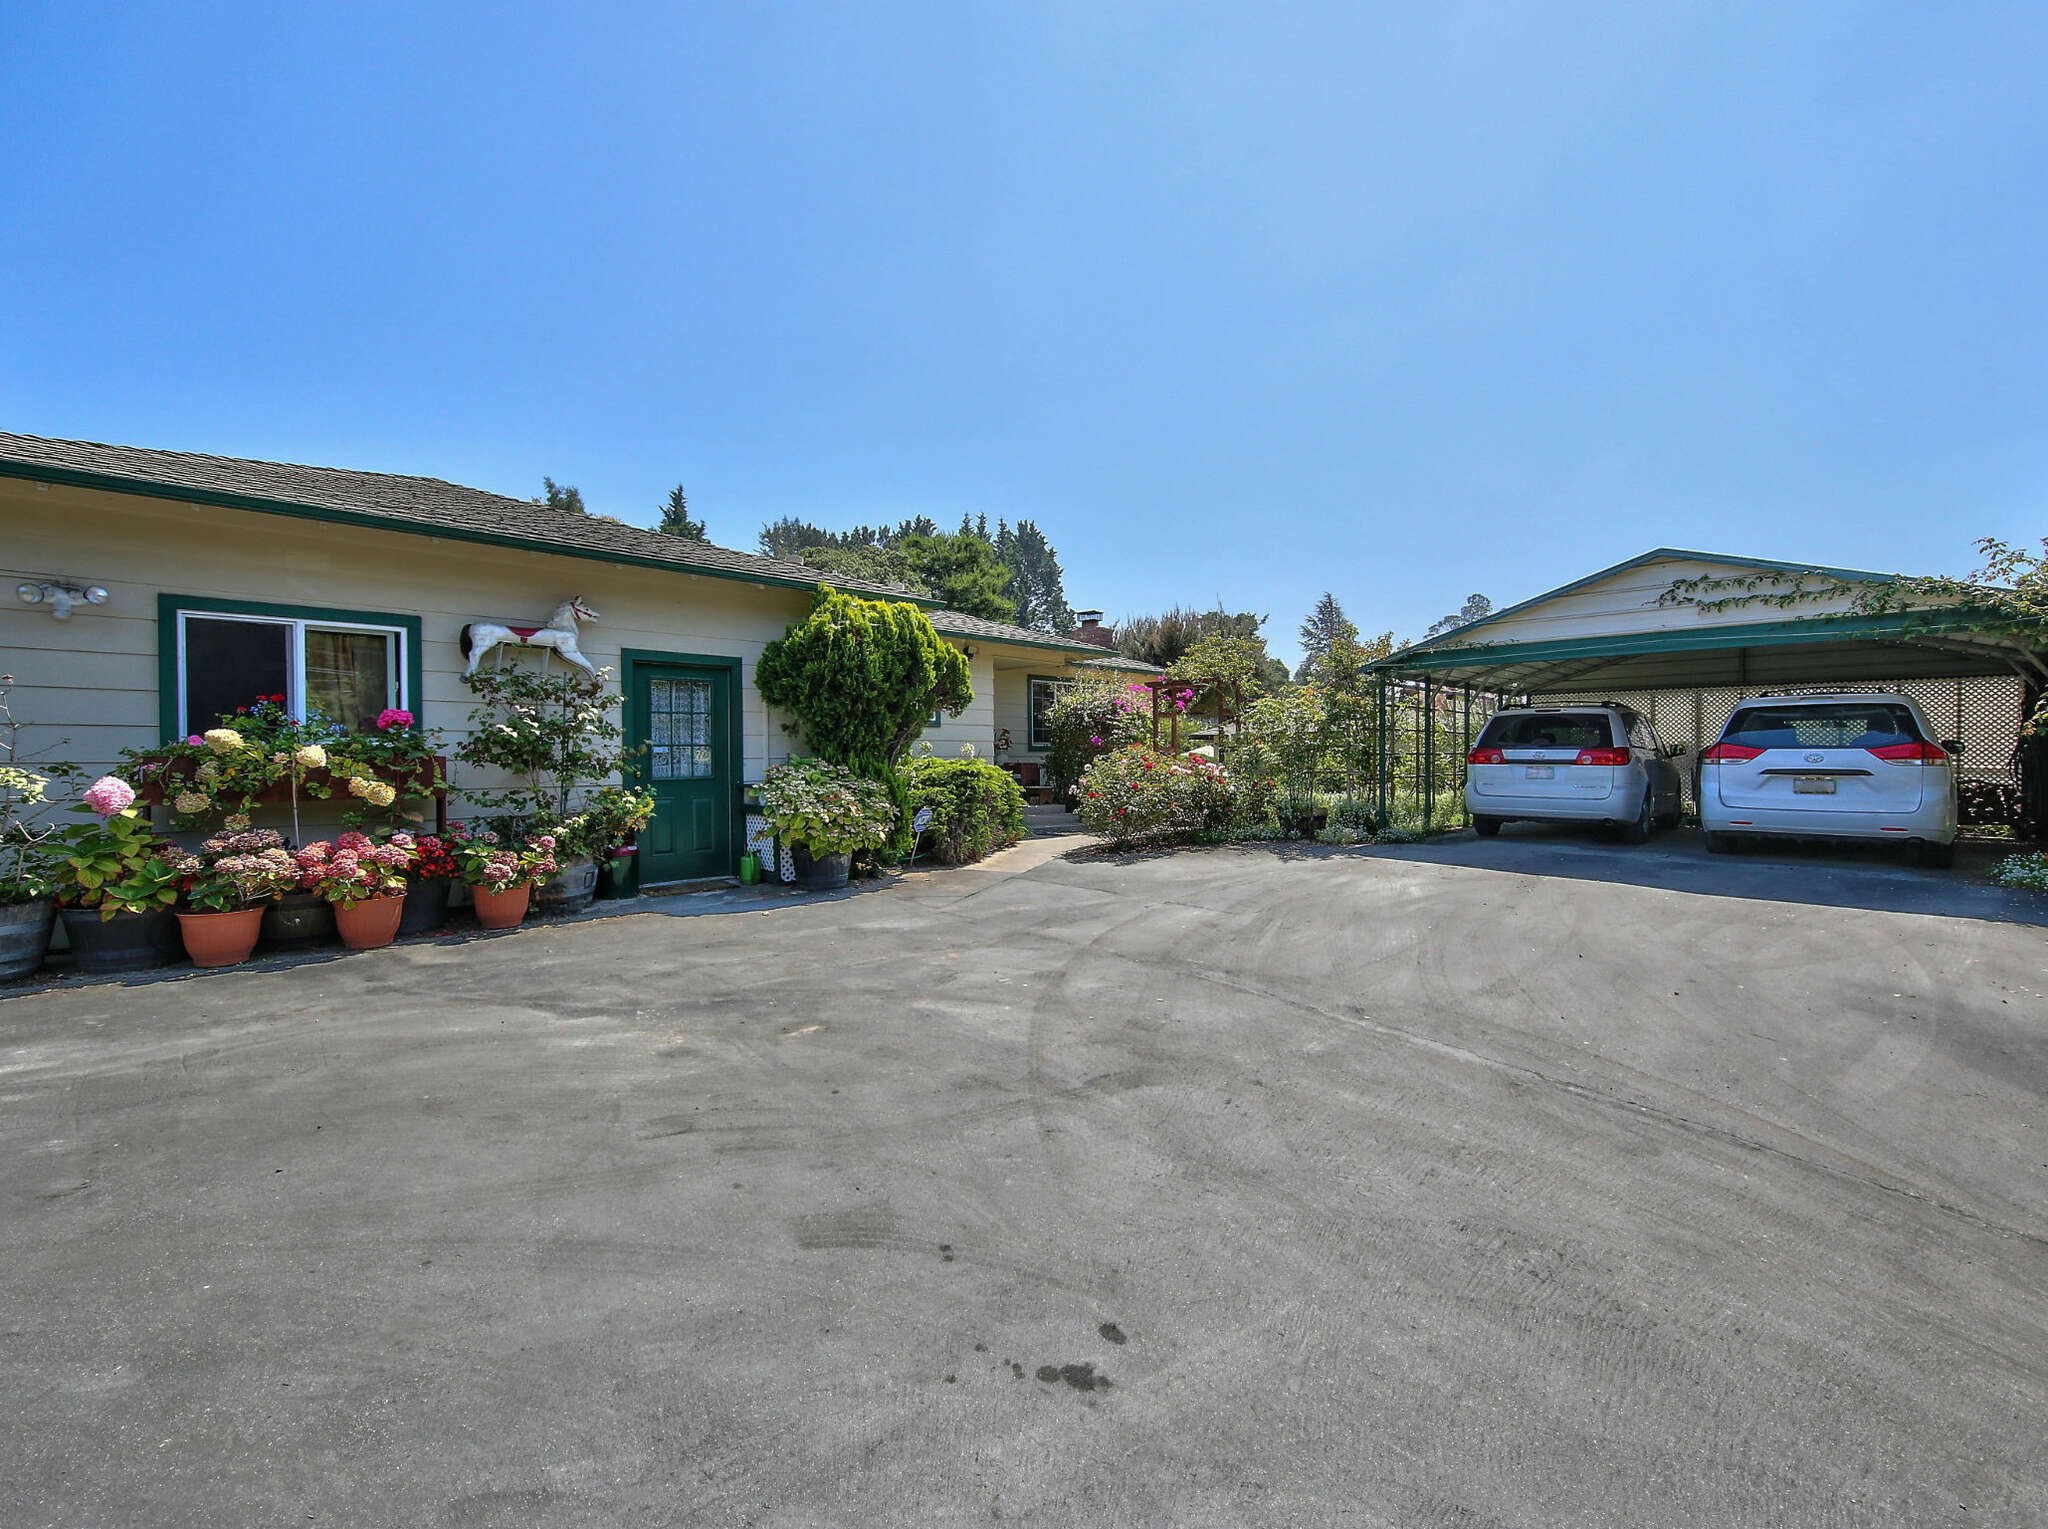 Single Family for Sale at 7559 Langley Canyon Rd. Salinas, California 93907 United States